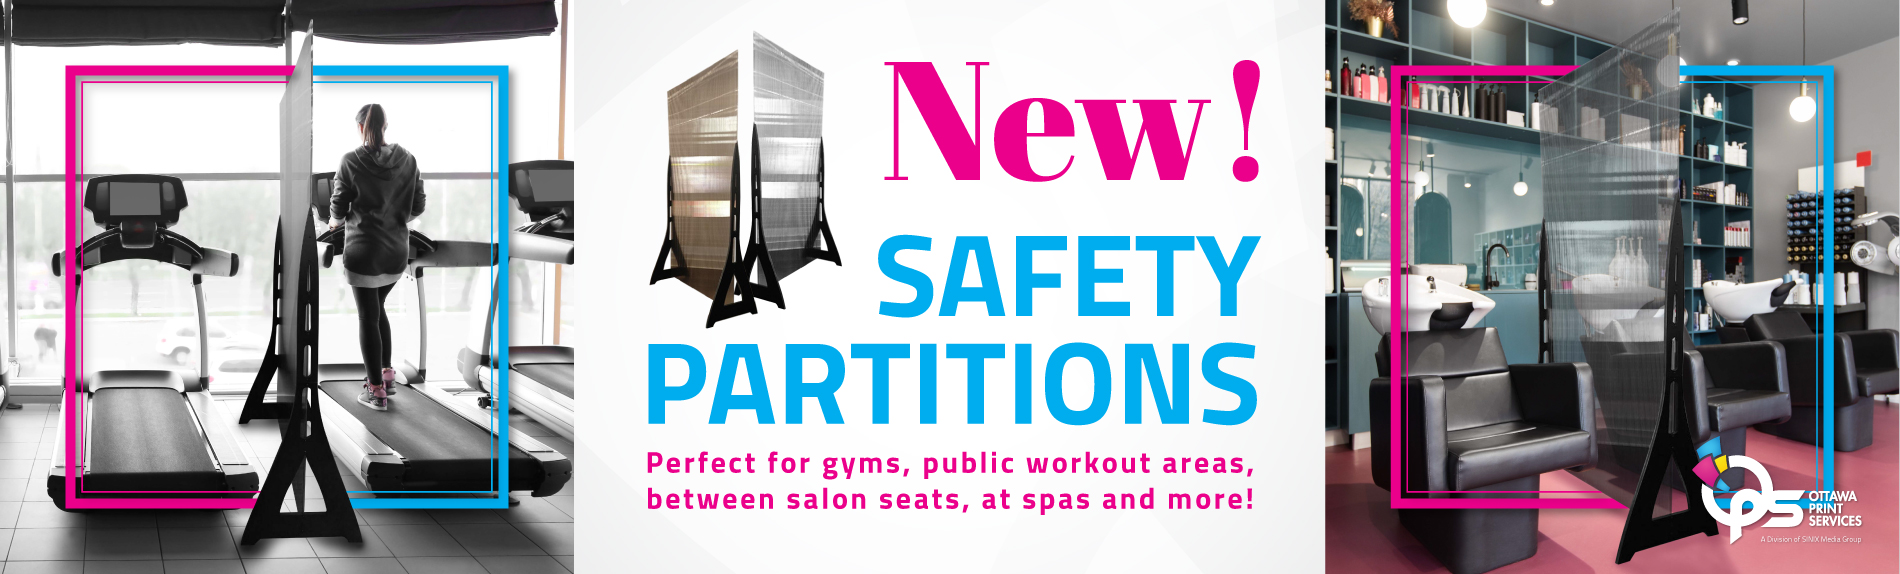 Safety Partitions